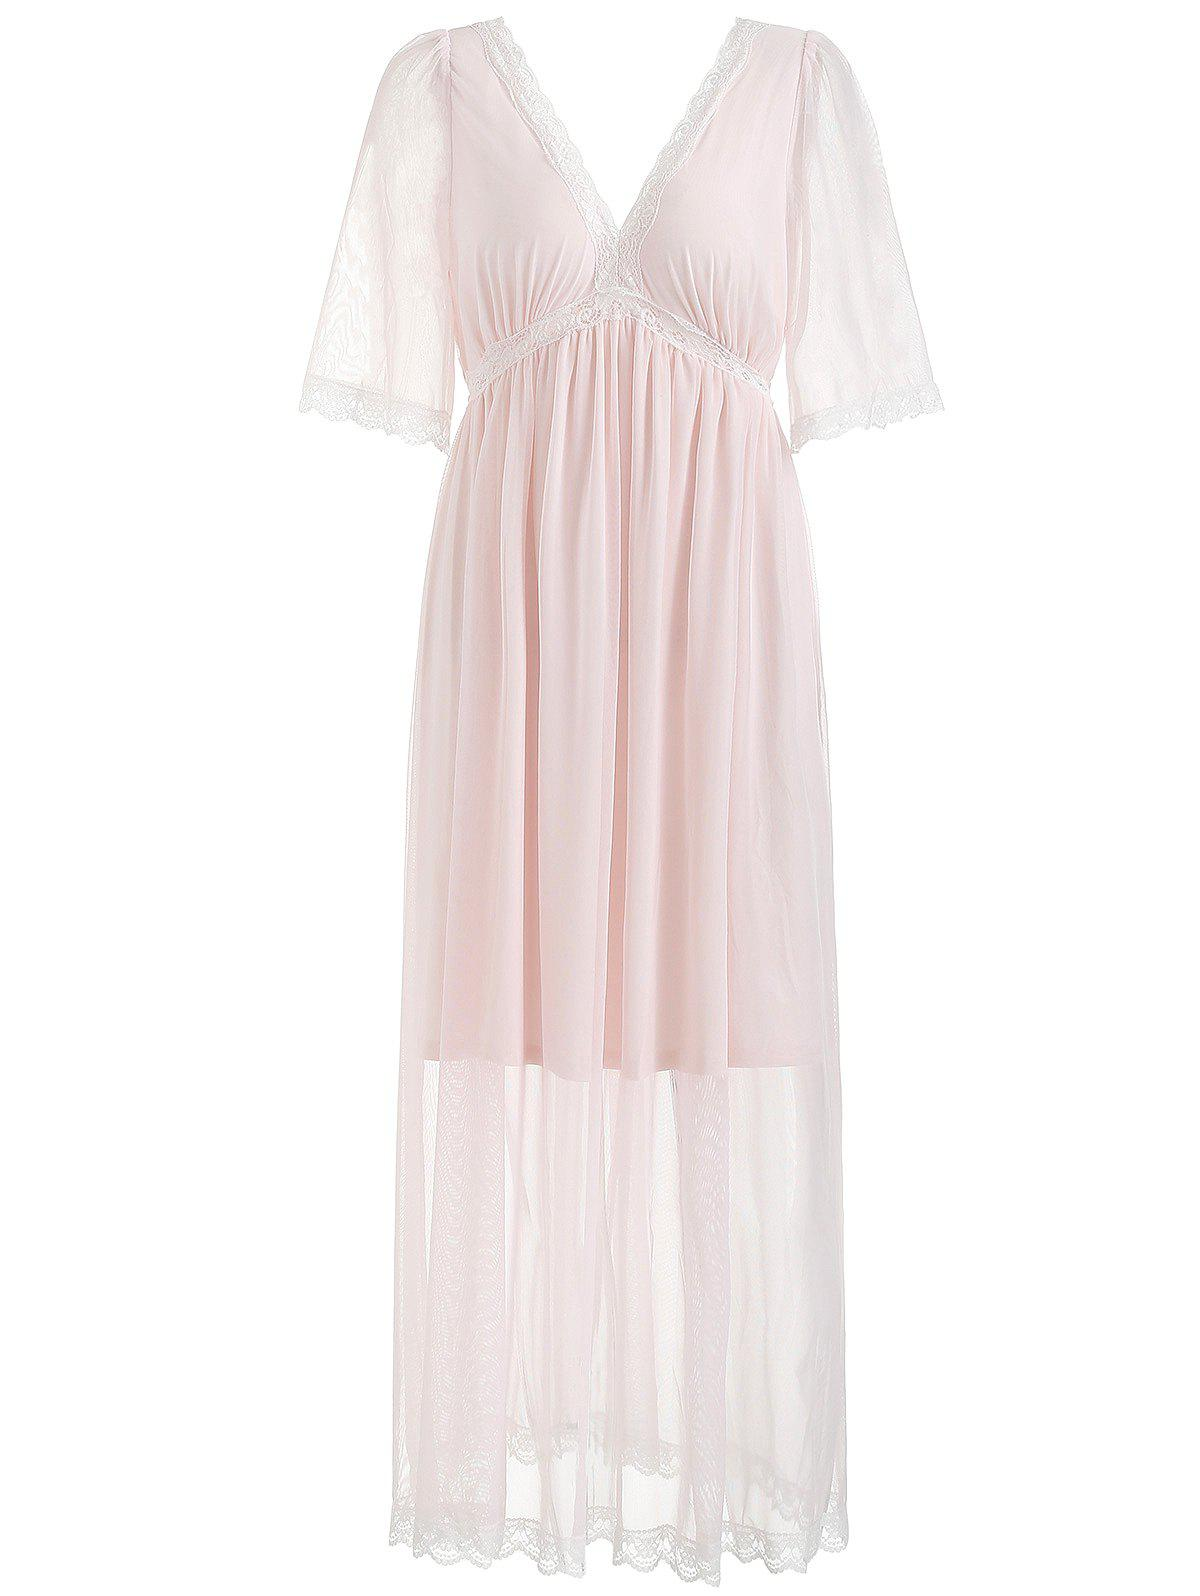 Plongée Mesh Maxi Nightdress - Cerisier Rose S